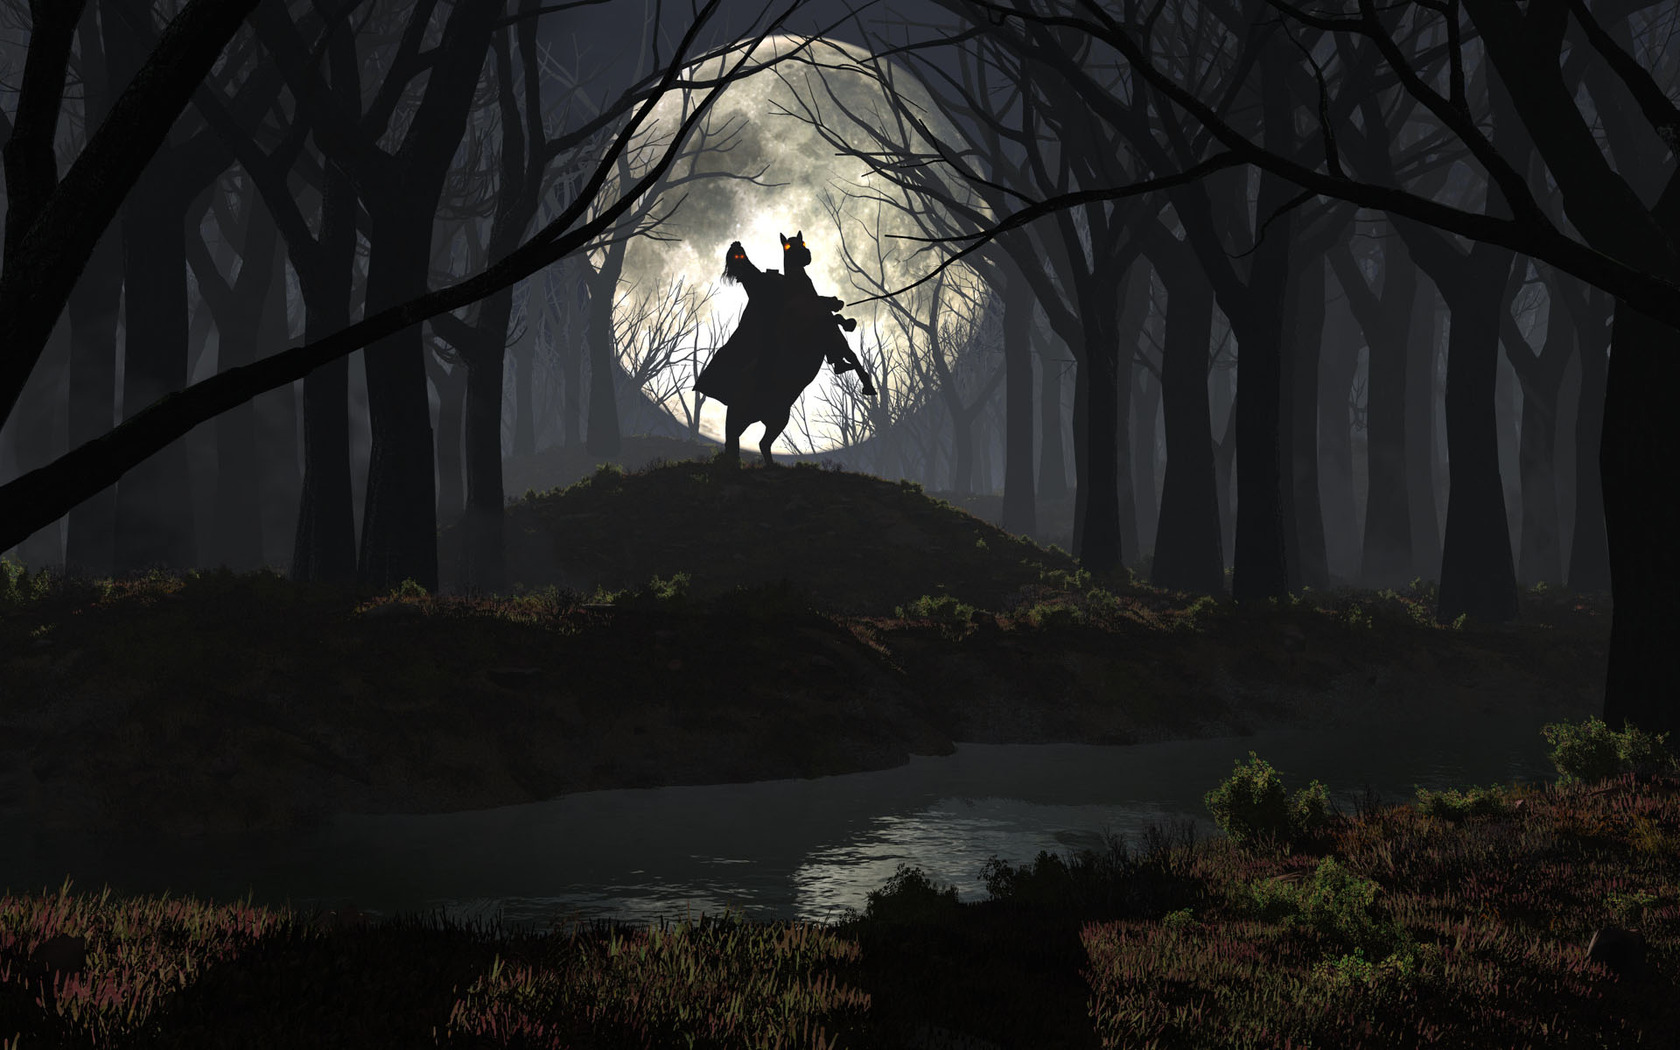 ... in the spooky forest 1680x1050 wallpaper ...